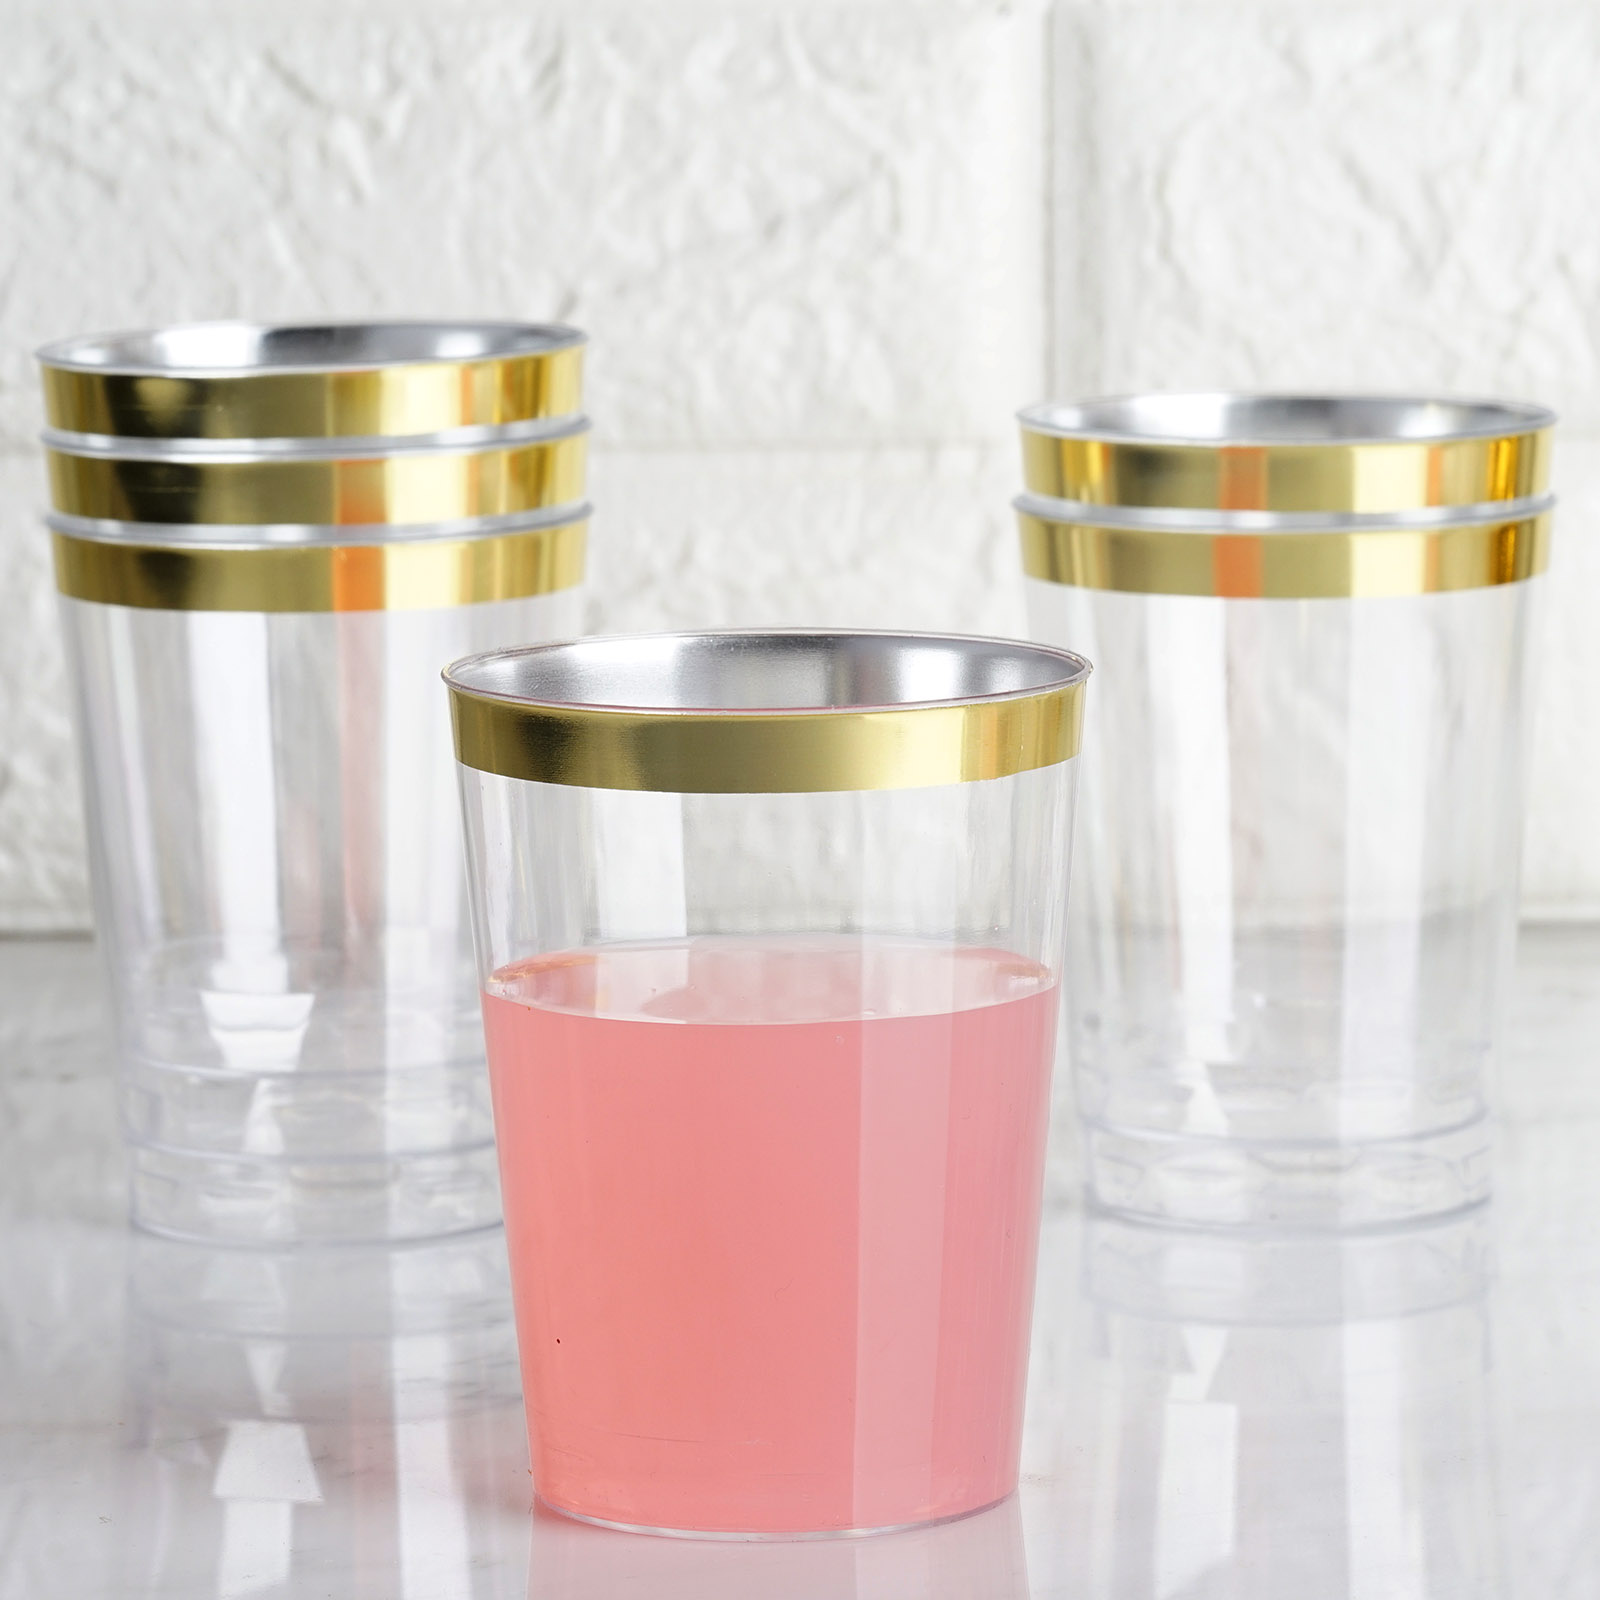 10 Oz Disposable Clear With Gold Rim Plastic Cups Wedding Party Tableware Sale Ebay